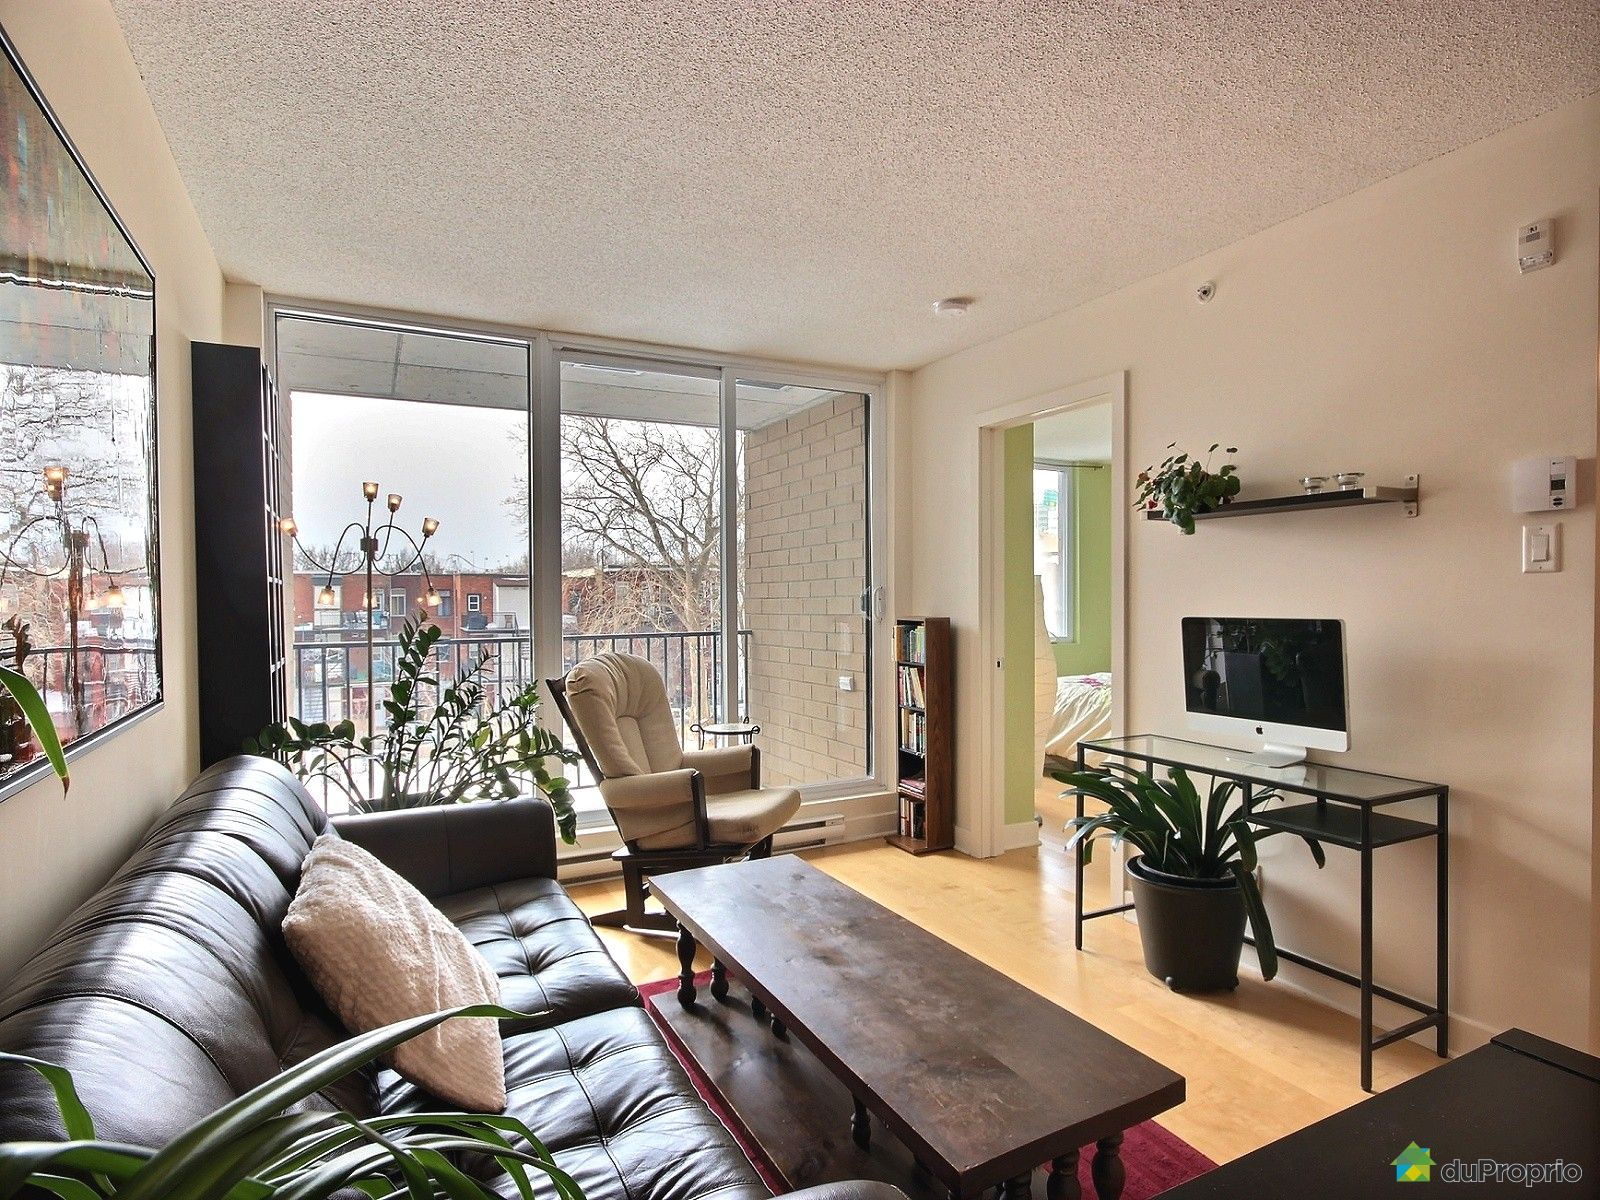 Condo for sale in Montreal 303 680 rue de Courcelle DuProprio  #495F2C